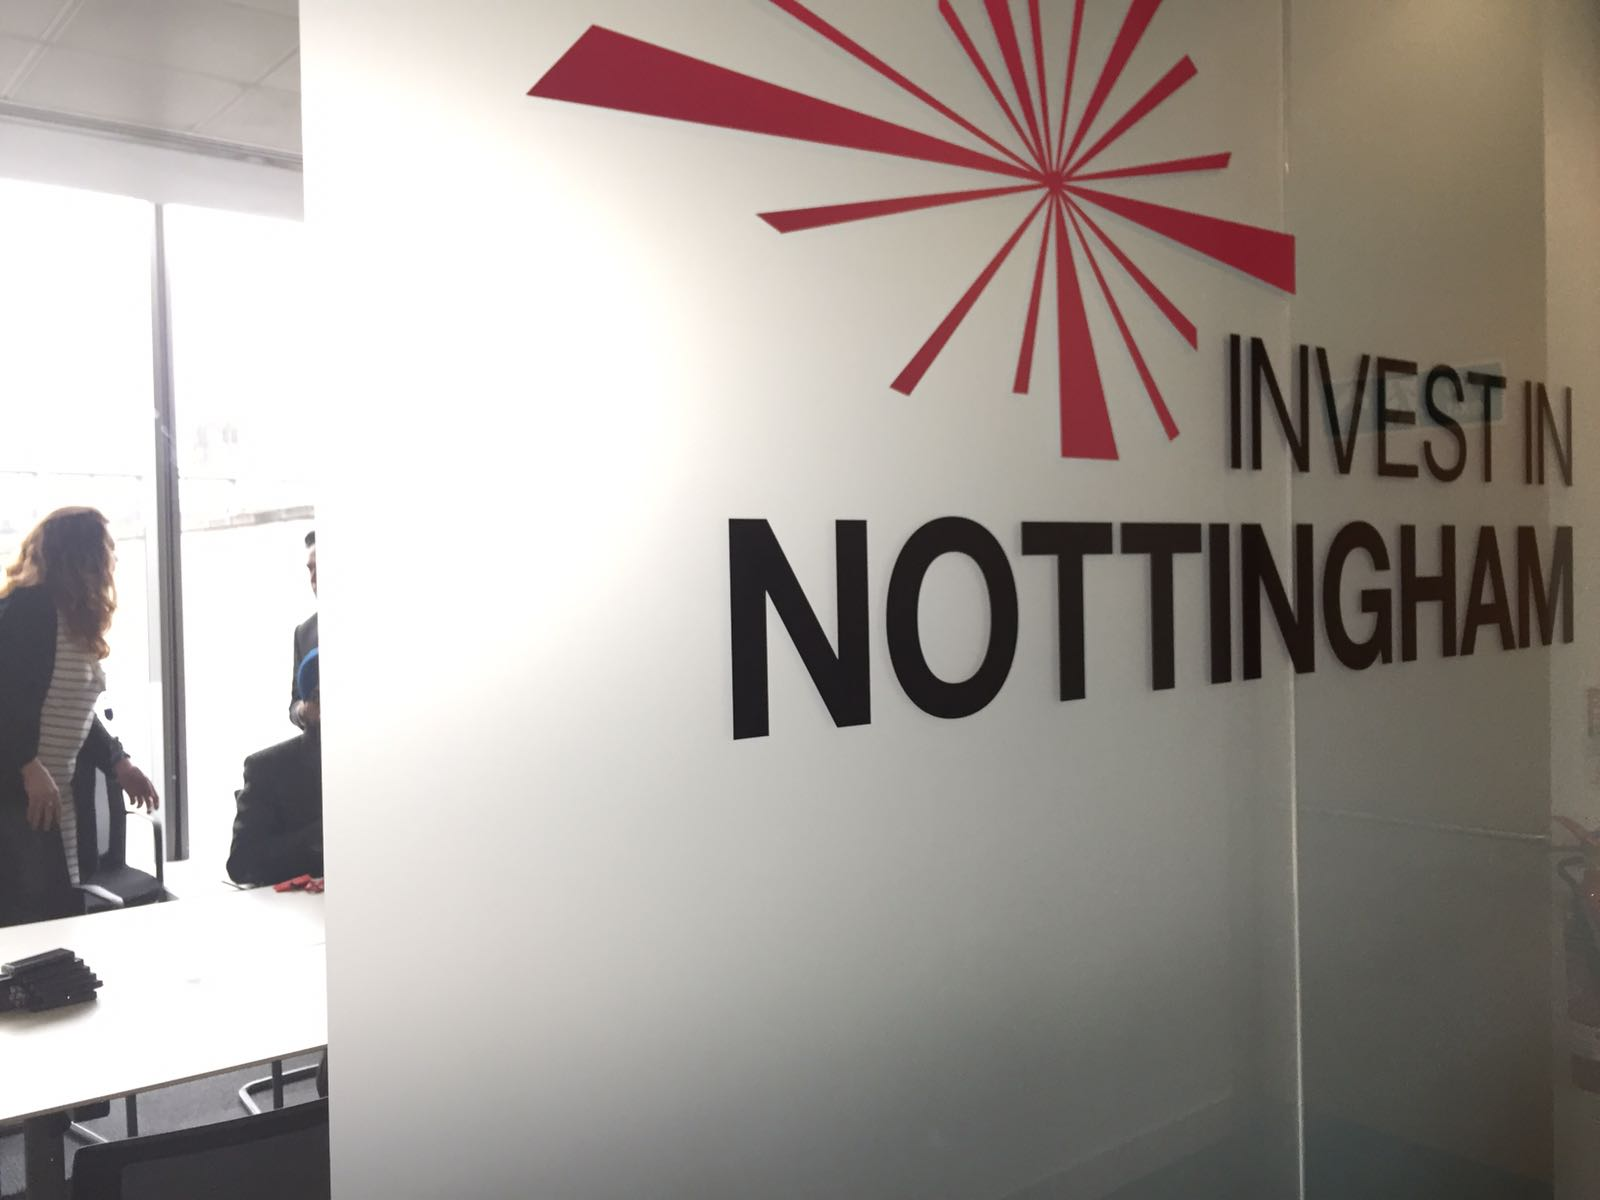 Invest in Nottingham